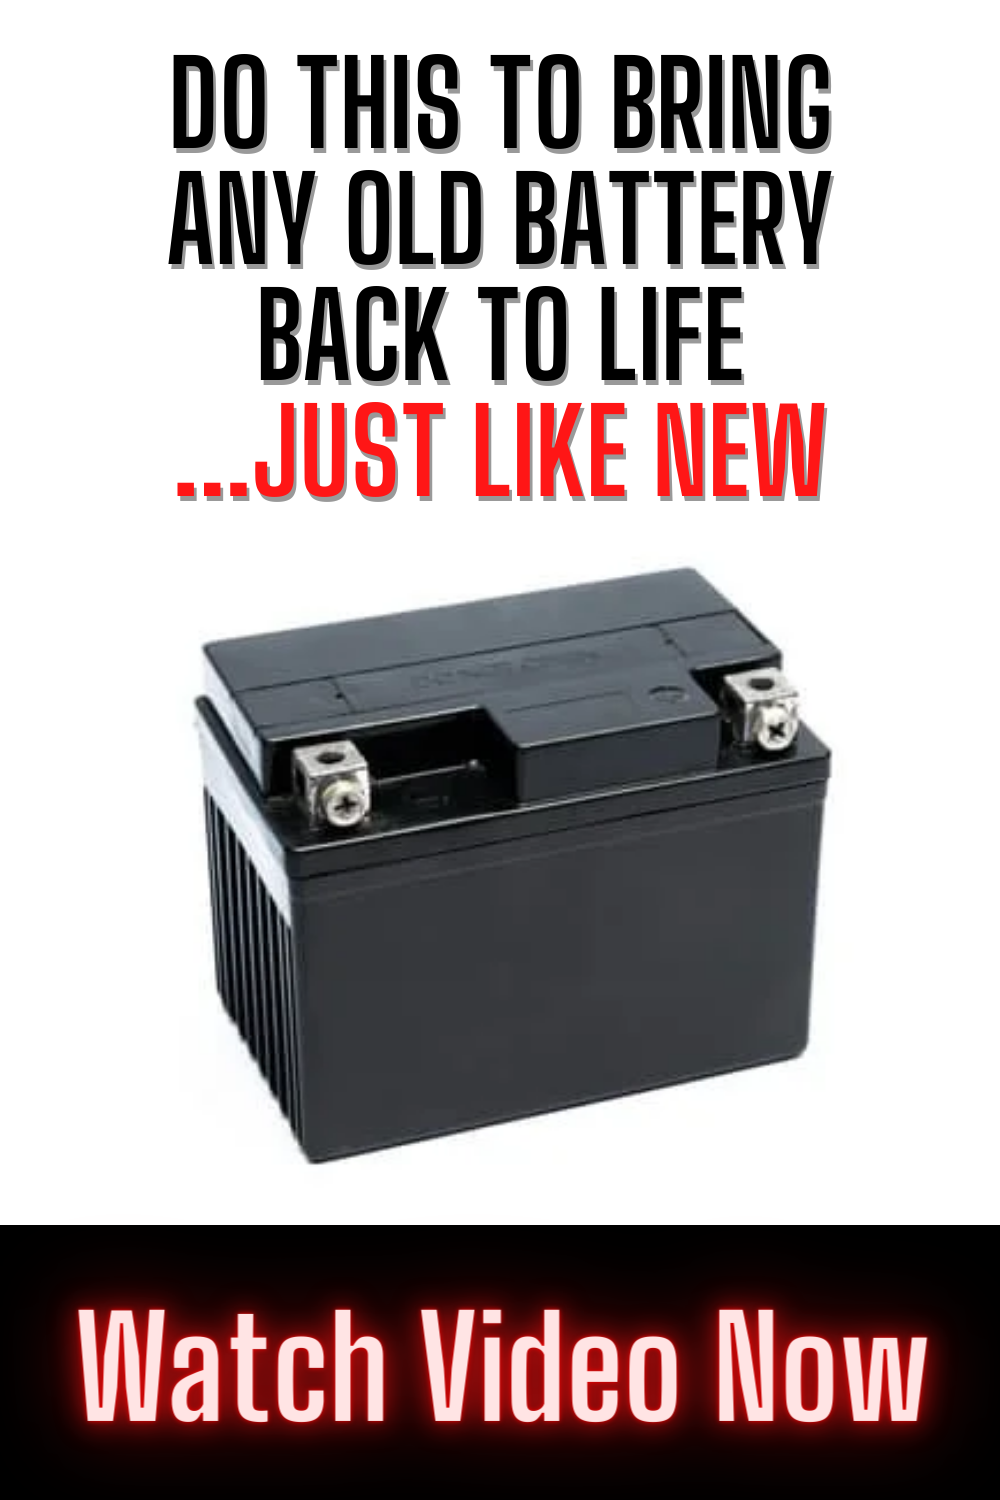 How To Recondition Batteries At Home For Free Step By Step In 2021 Recondition Batteries Battery Hacks Battery Repair